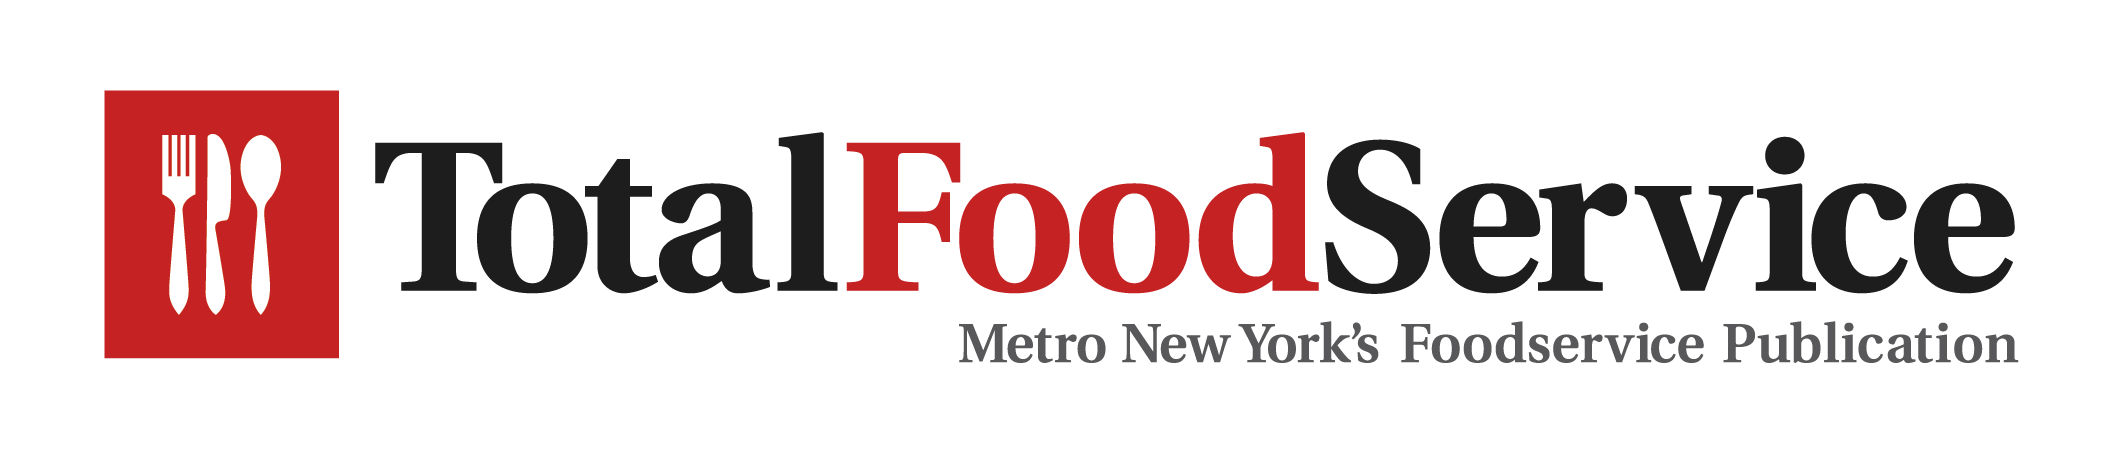 MEDIA_Sponsor_TotalFoodService-01.png